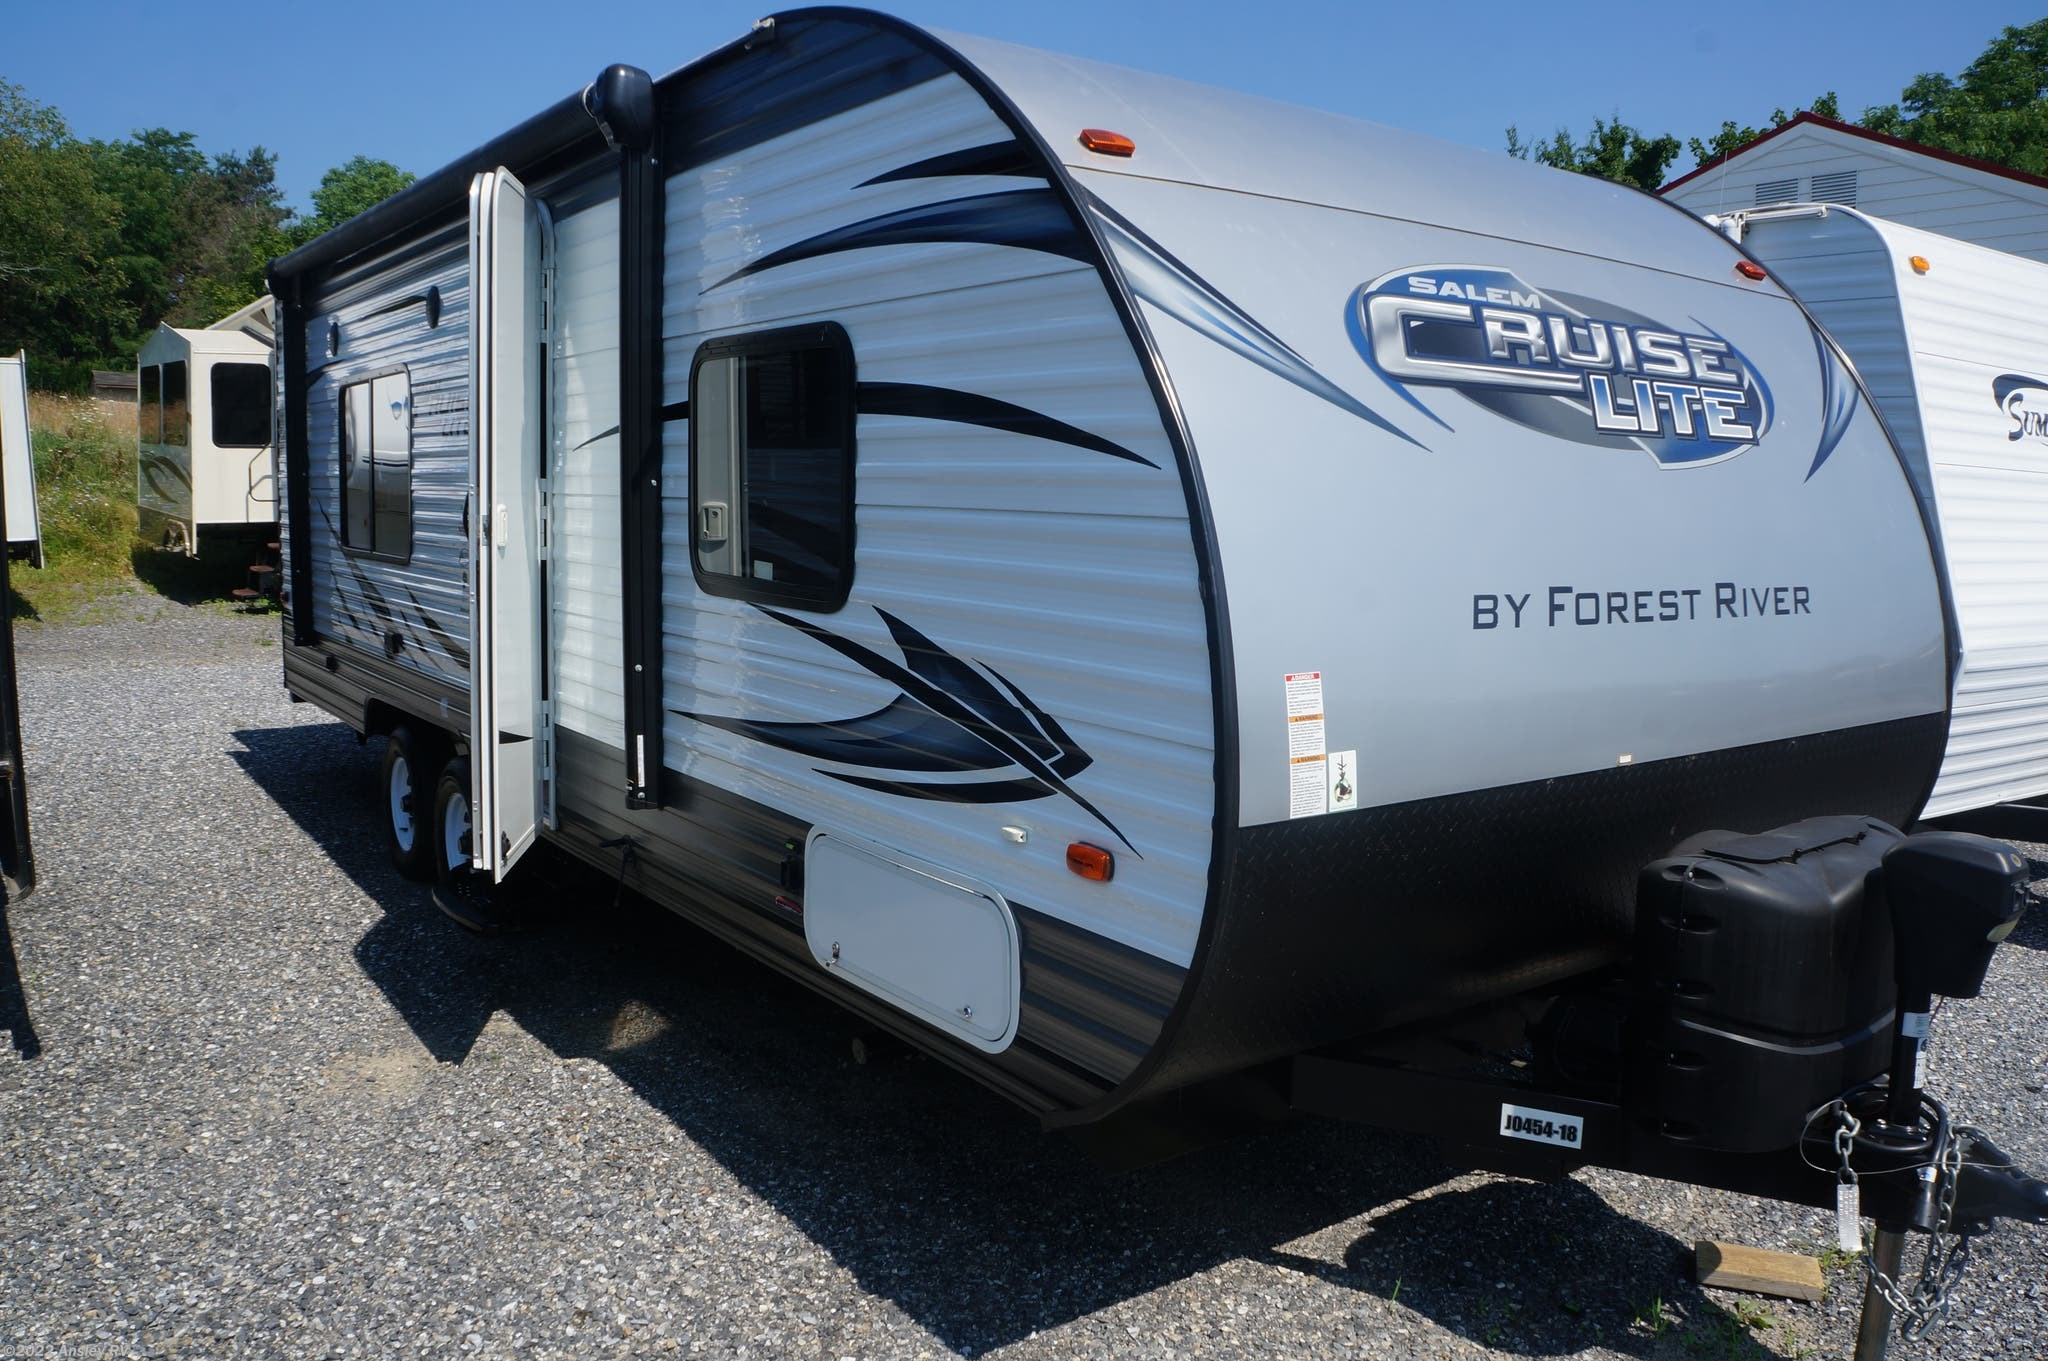 D0817-17 - 2018 Livin' Lite CampLite16DBS for sale in